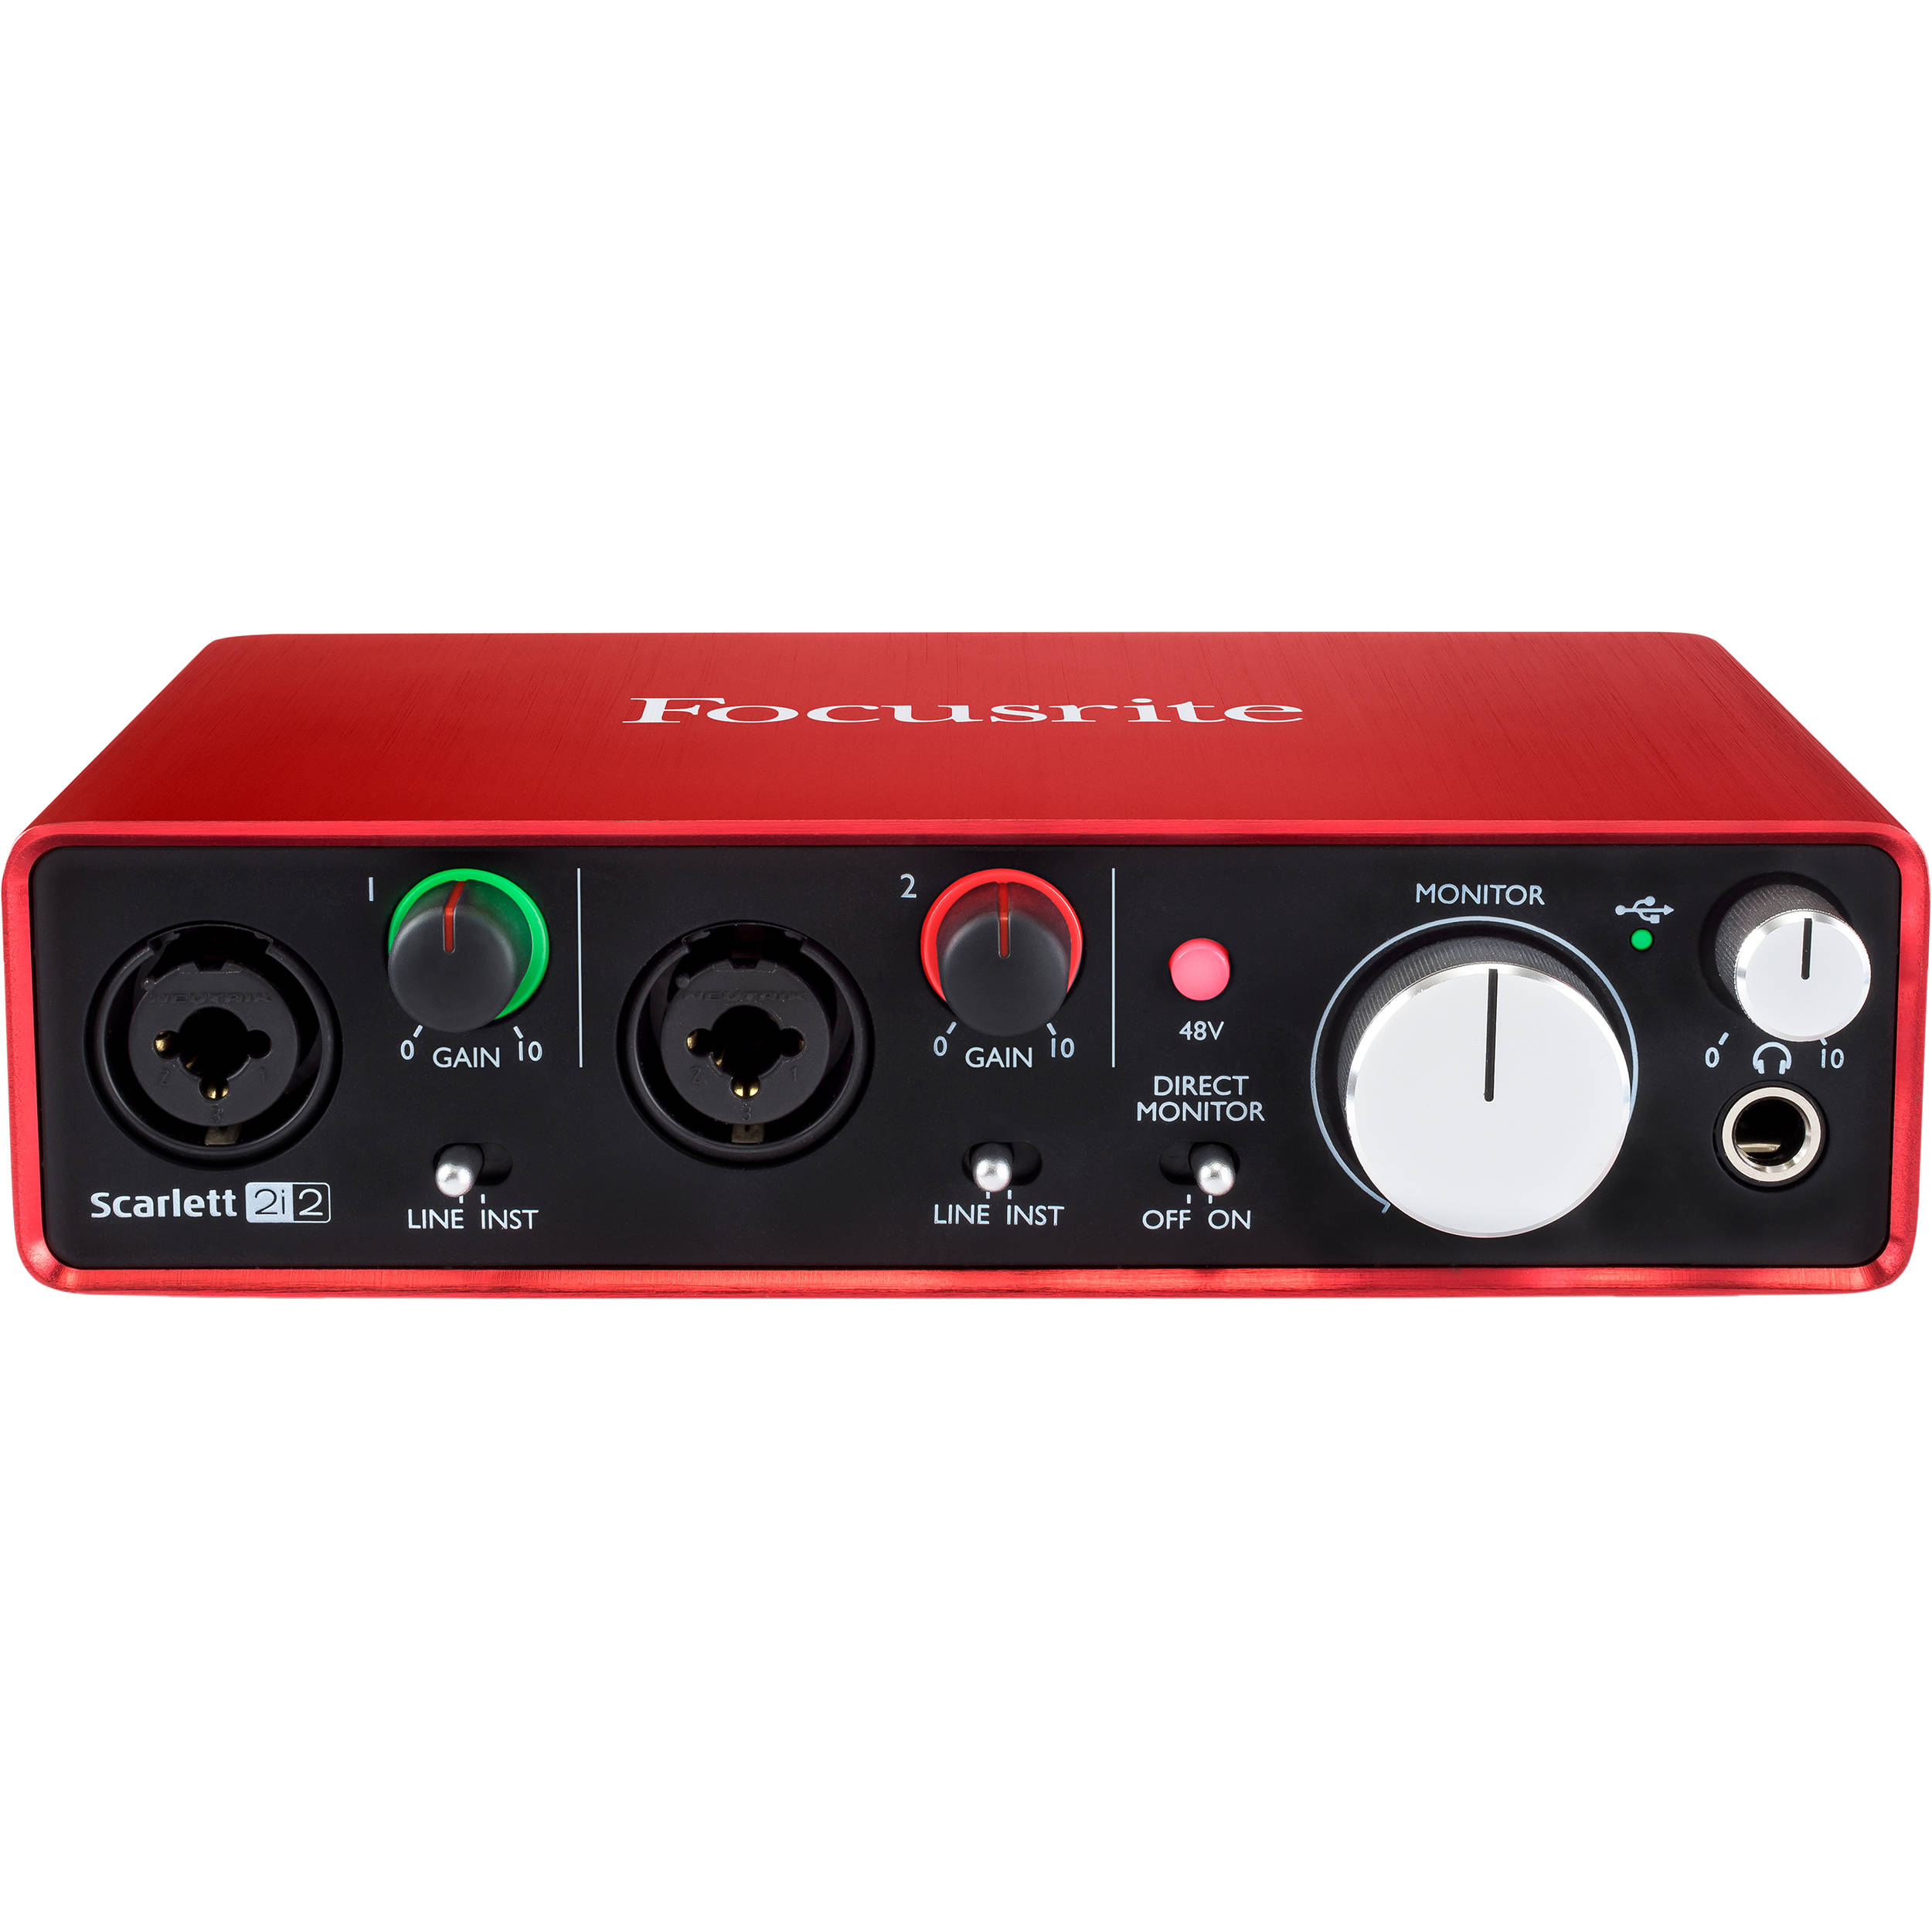 Focusrite Audio Interfaces : focusrite scarlett 2i2 usb audio interface scarlett 2i2 2nd gen ~ Hamham.info Haus und Dekorationen